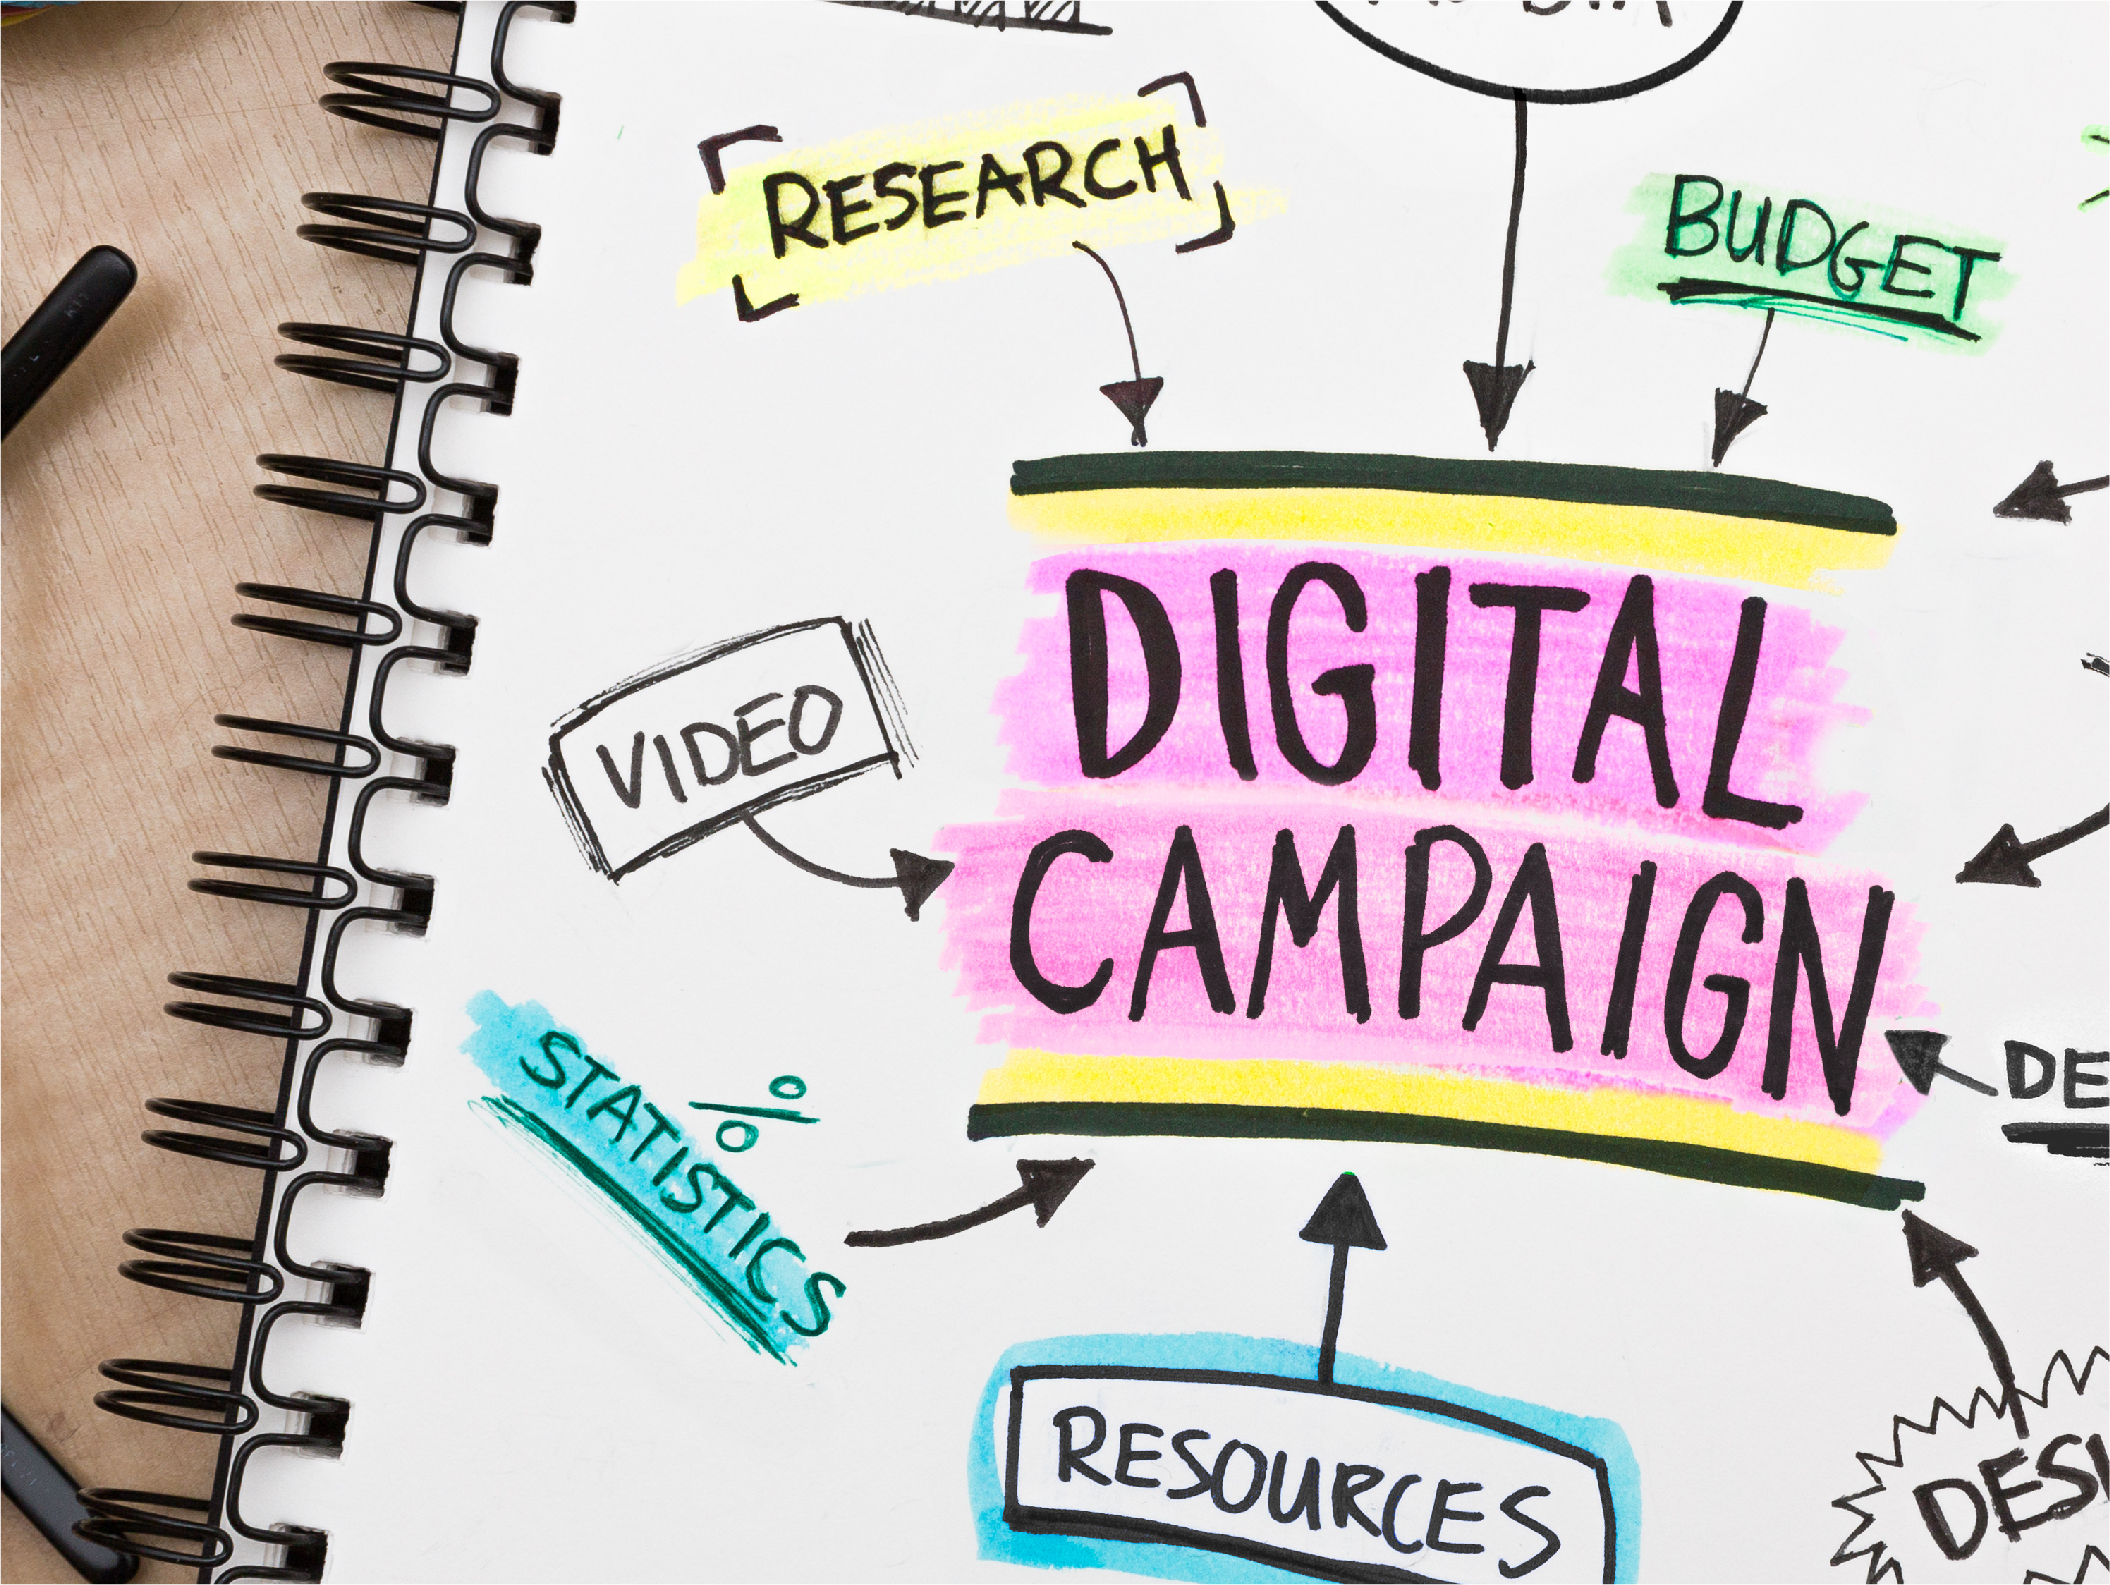 8 Keys to Online Campaign Success